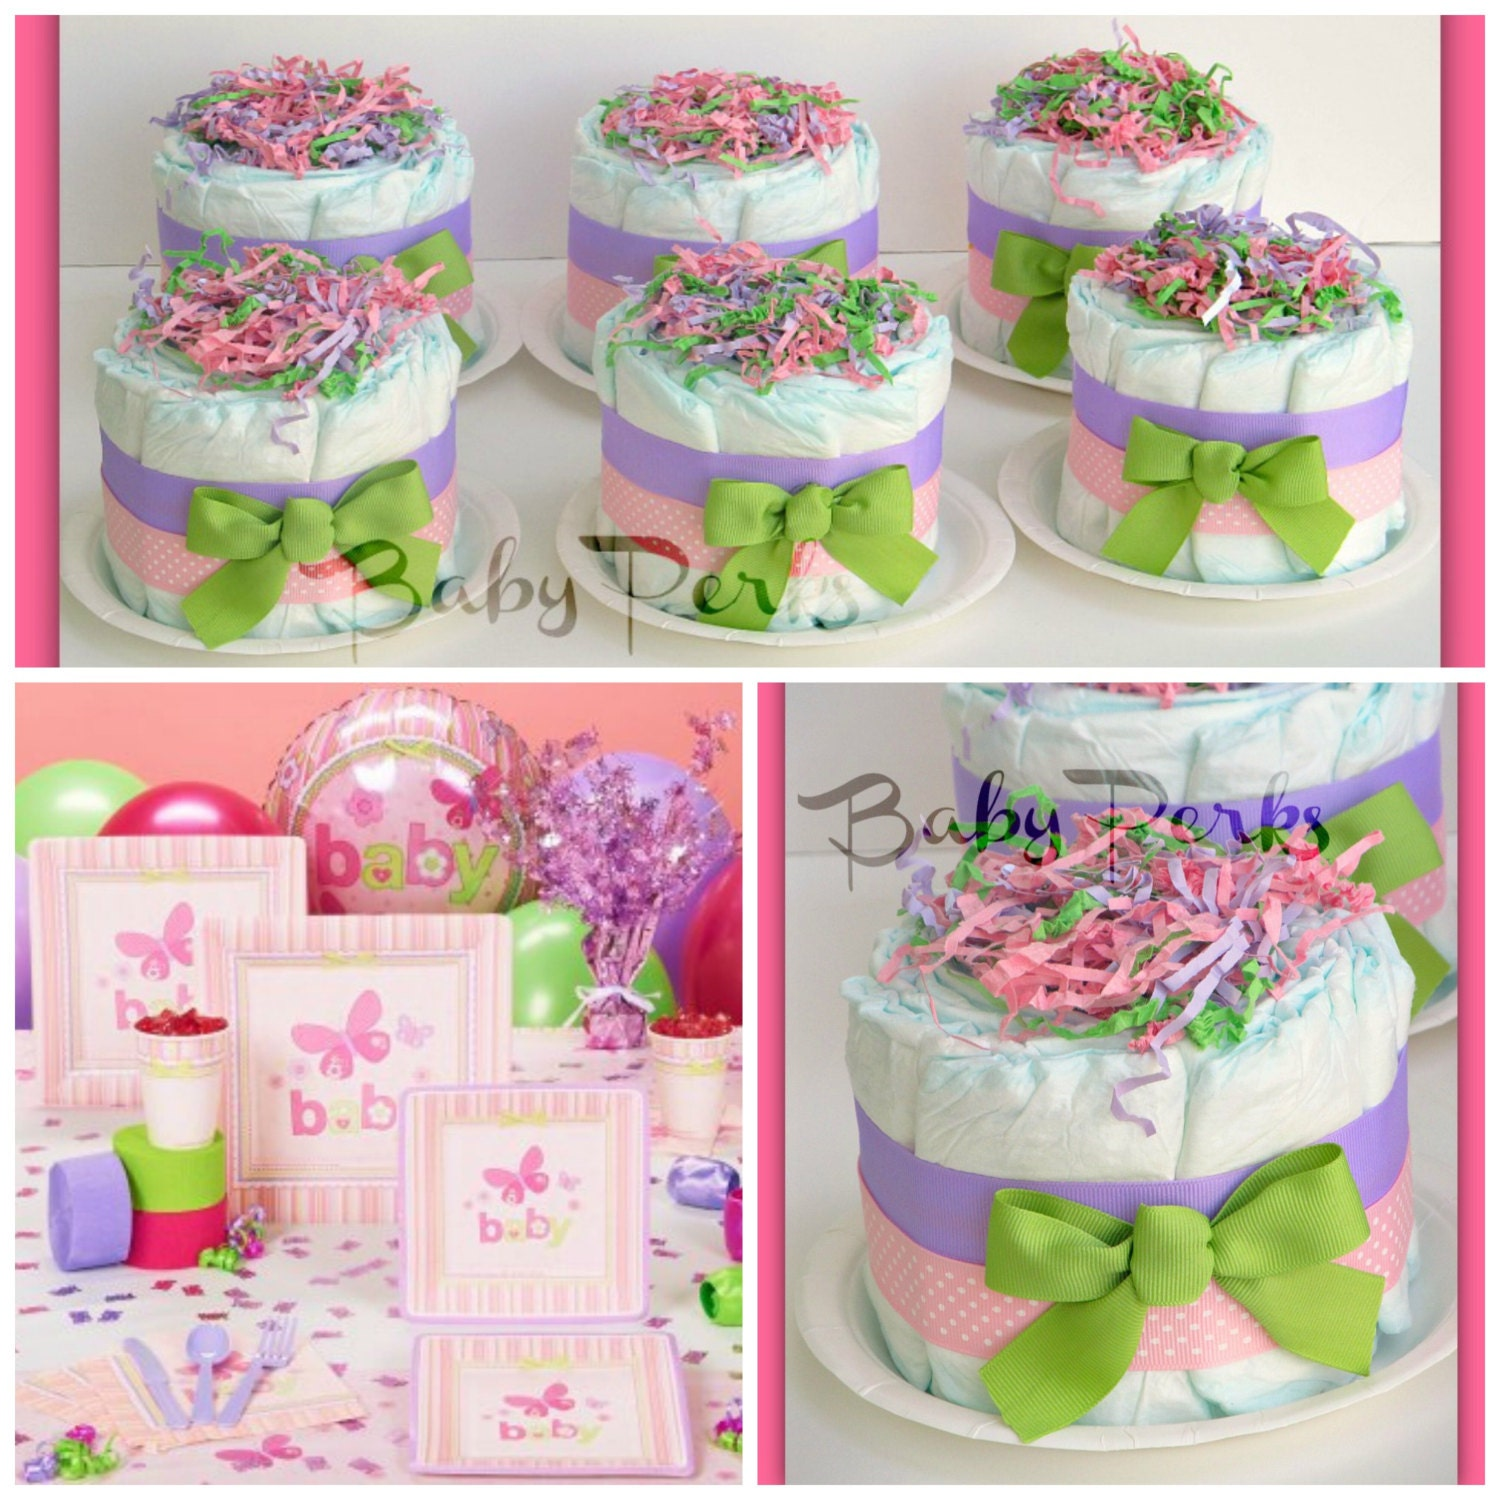 6 mini diaper cakes any colors baby shower decorations for Baby shower diaper decoration